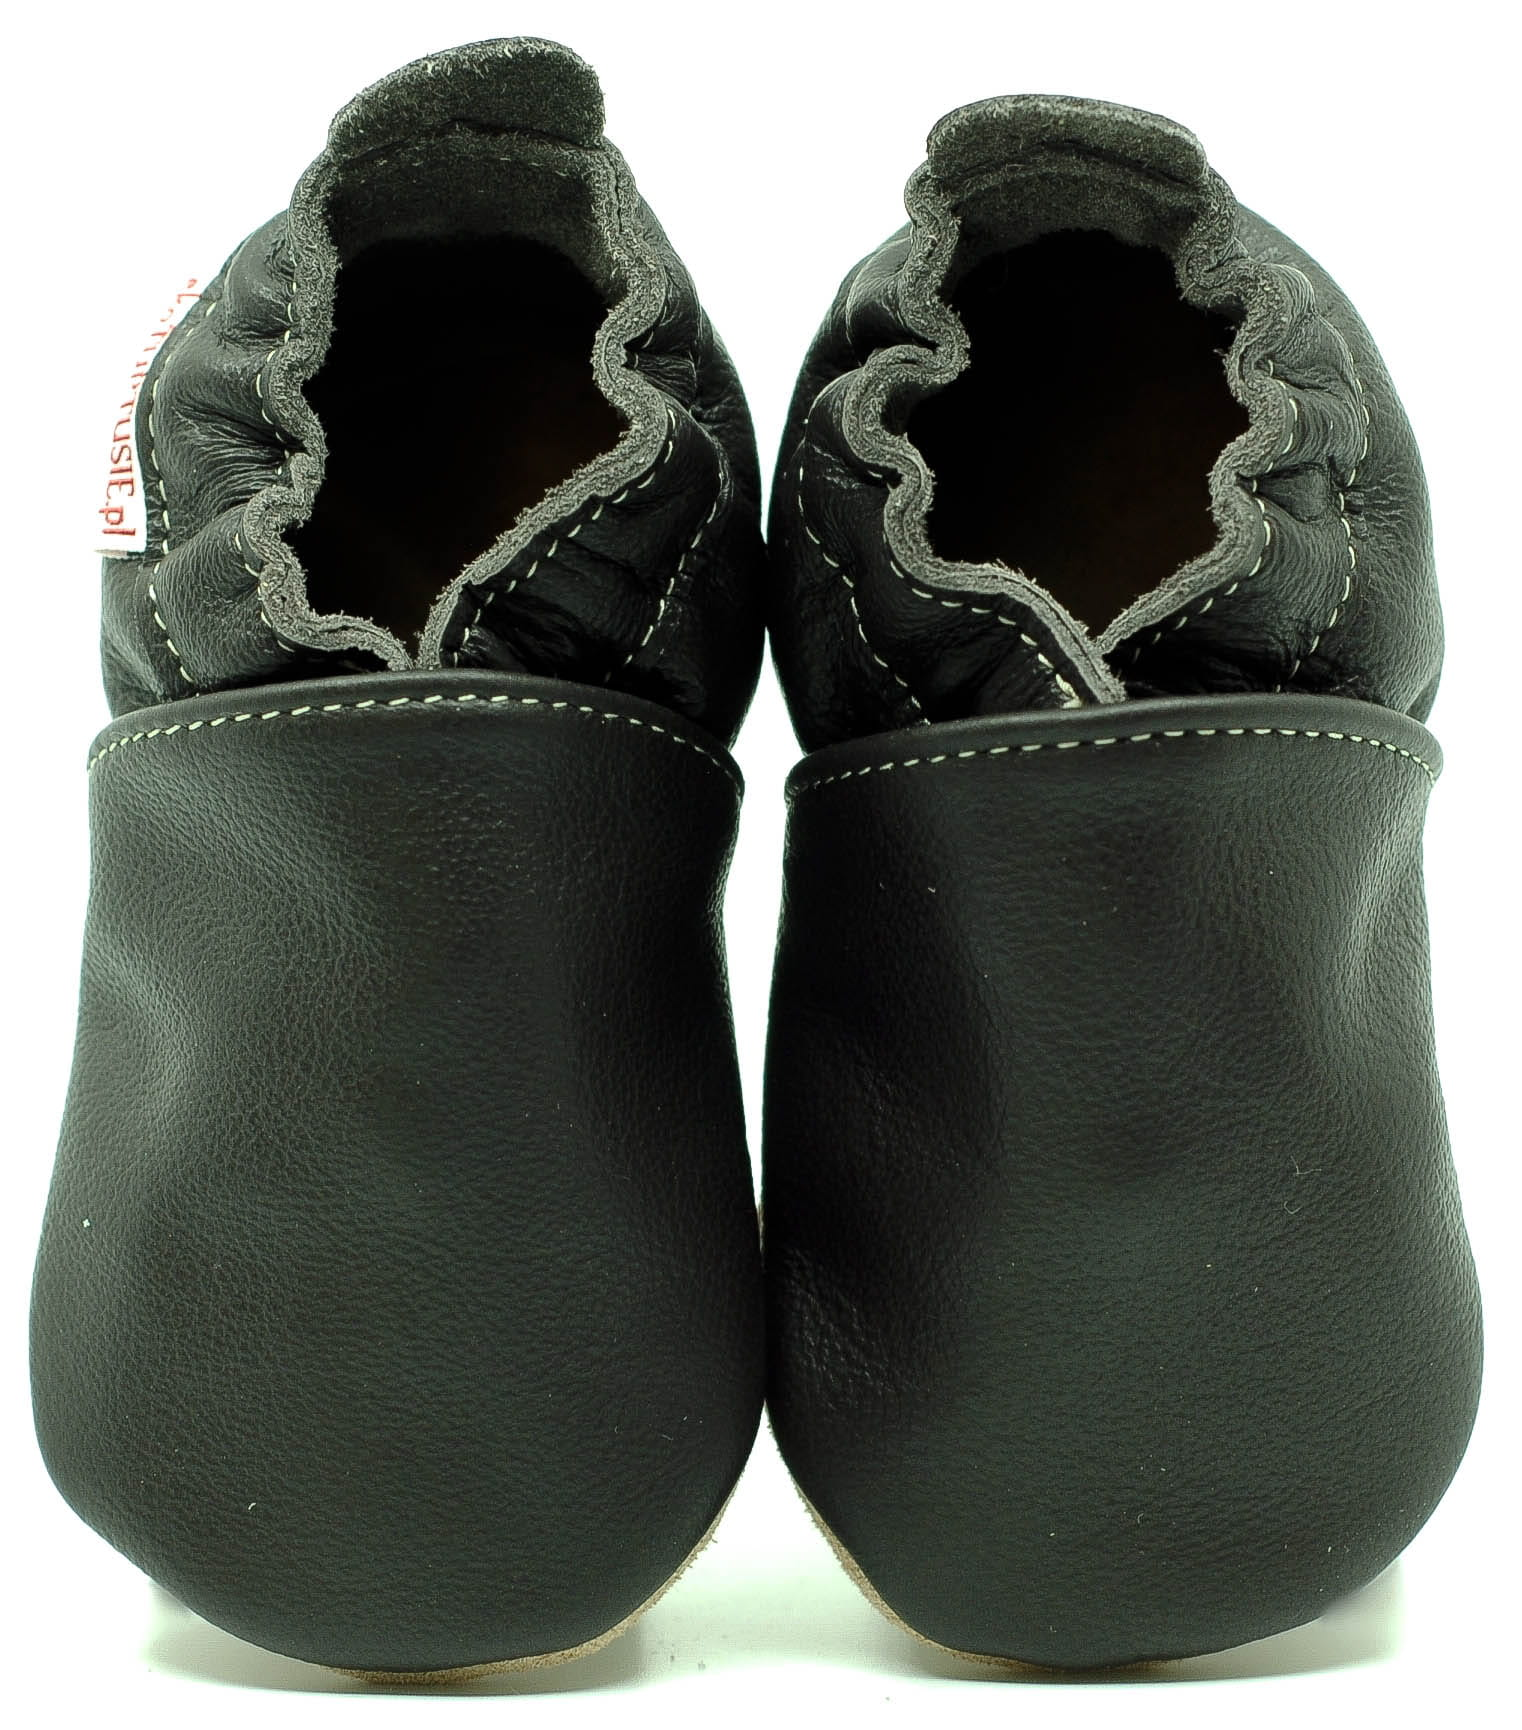 Soft Sole Baby Shoes BLACK FIORINO